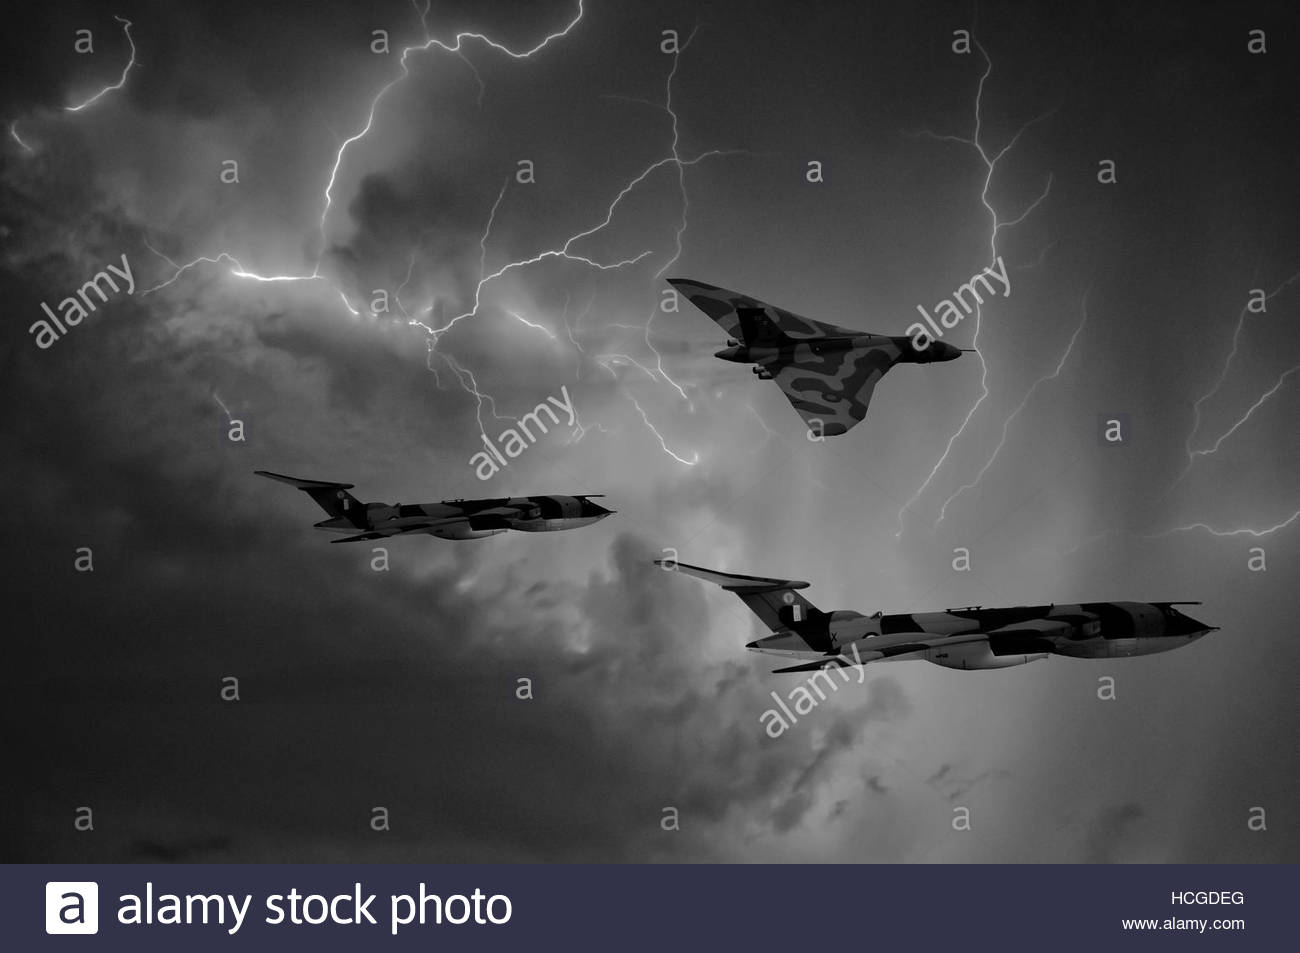 RAF Avro Vulcan bomber XM607 receives fuel from a Handley Page Victor tanker, during air to air refueling operations - Stock Image